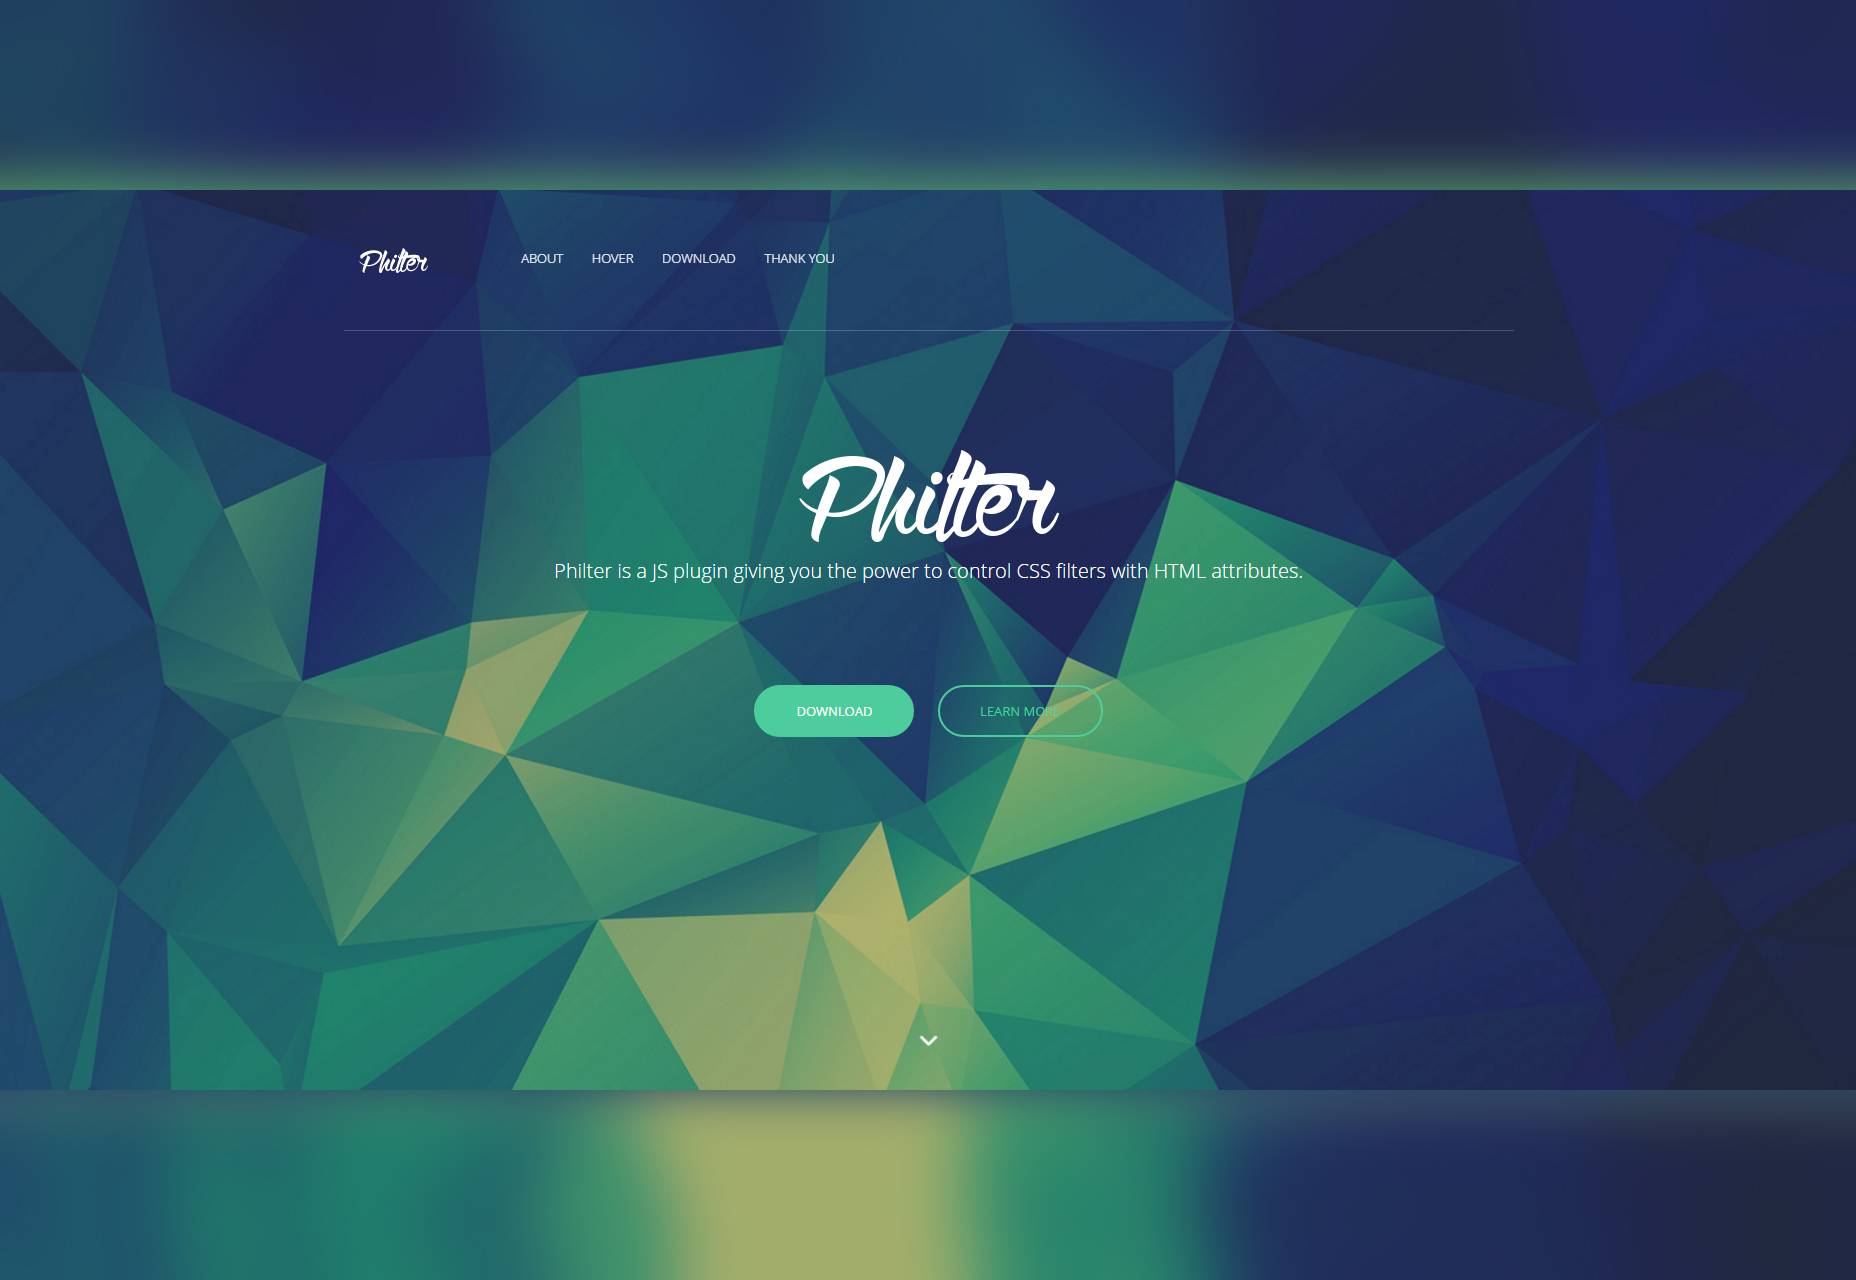 philter-css-filters-javascript-plugin-